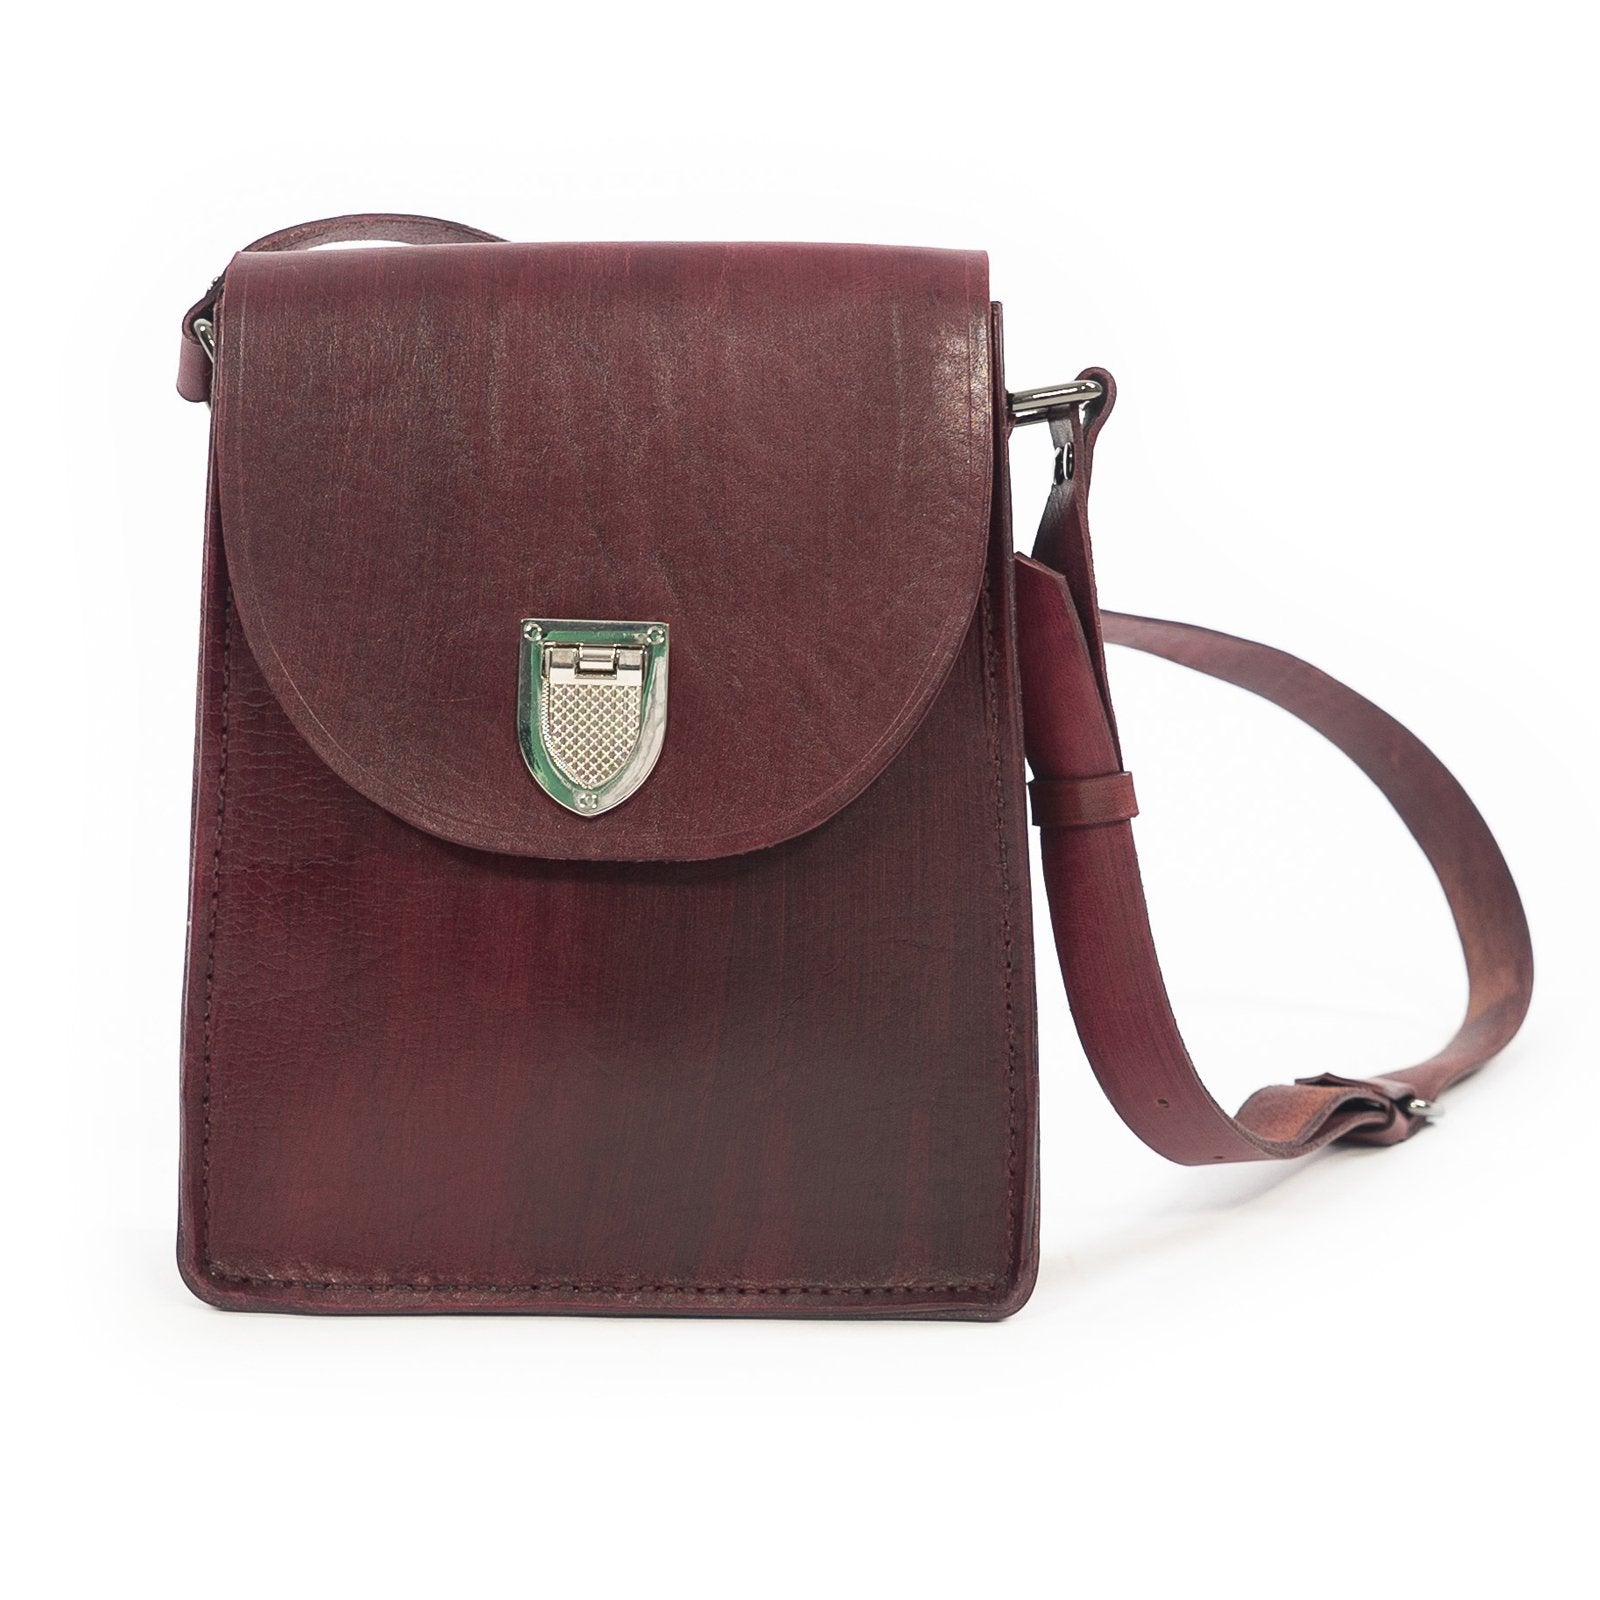 Derifix Gala Claret Red Women's Handmade Leather Bag